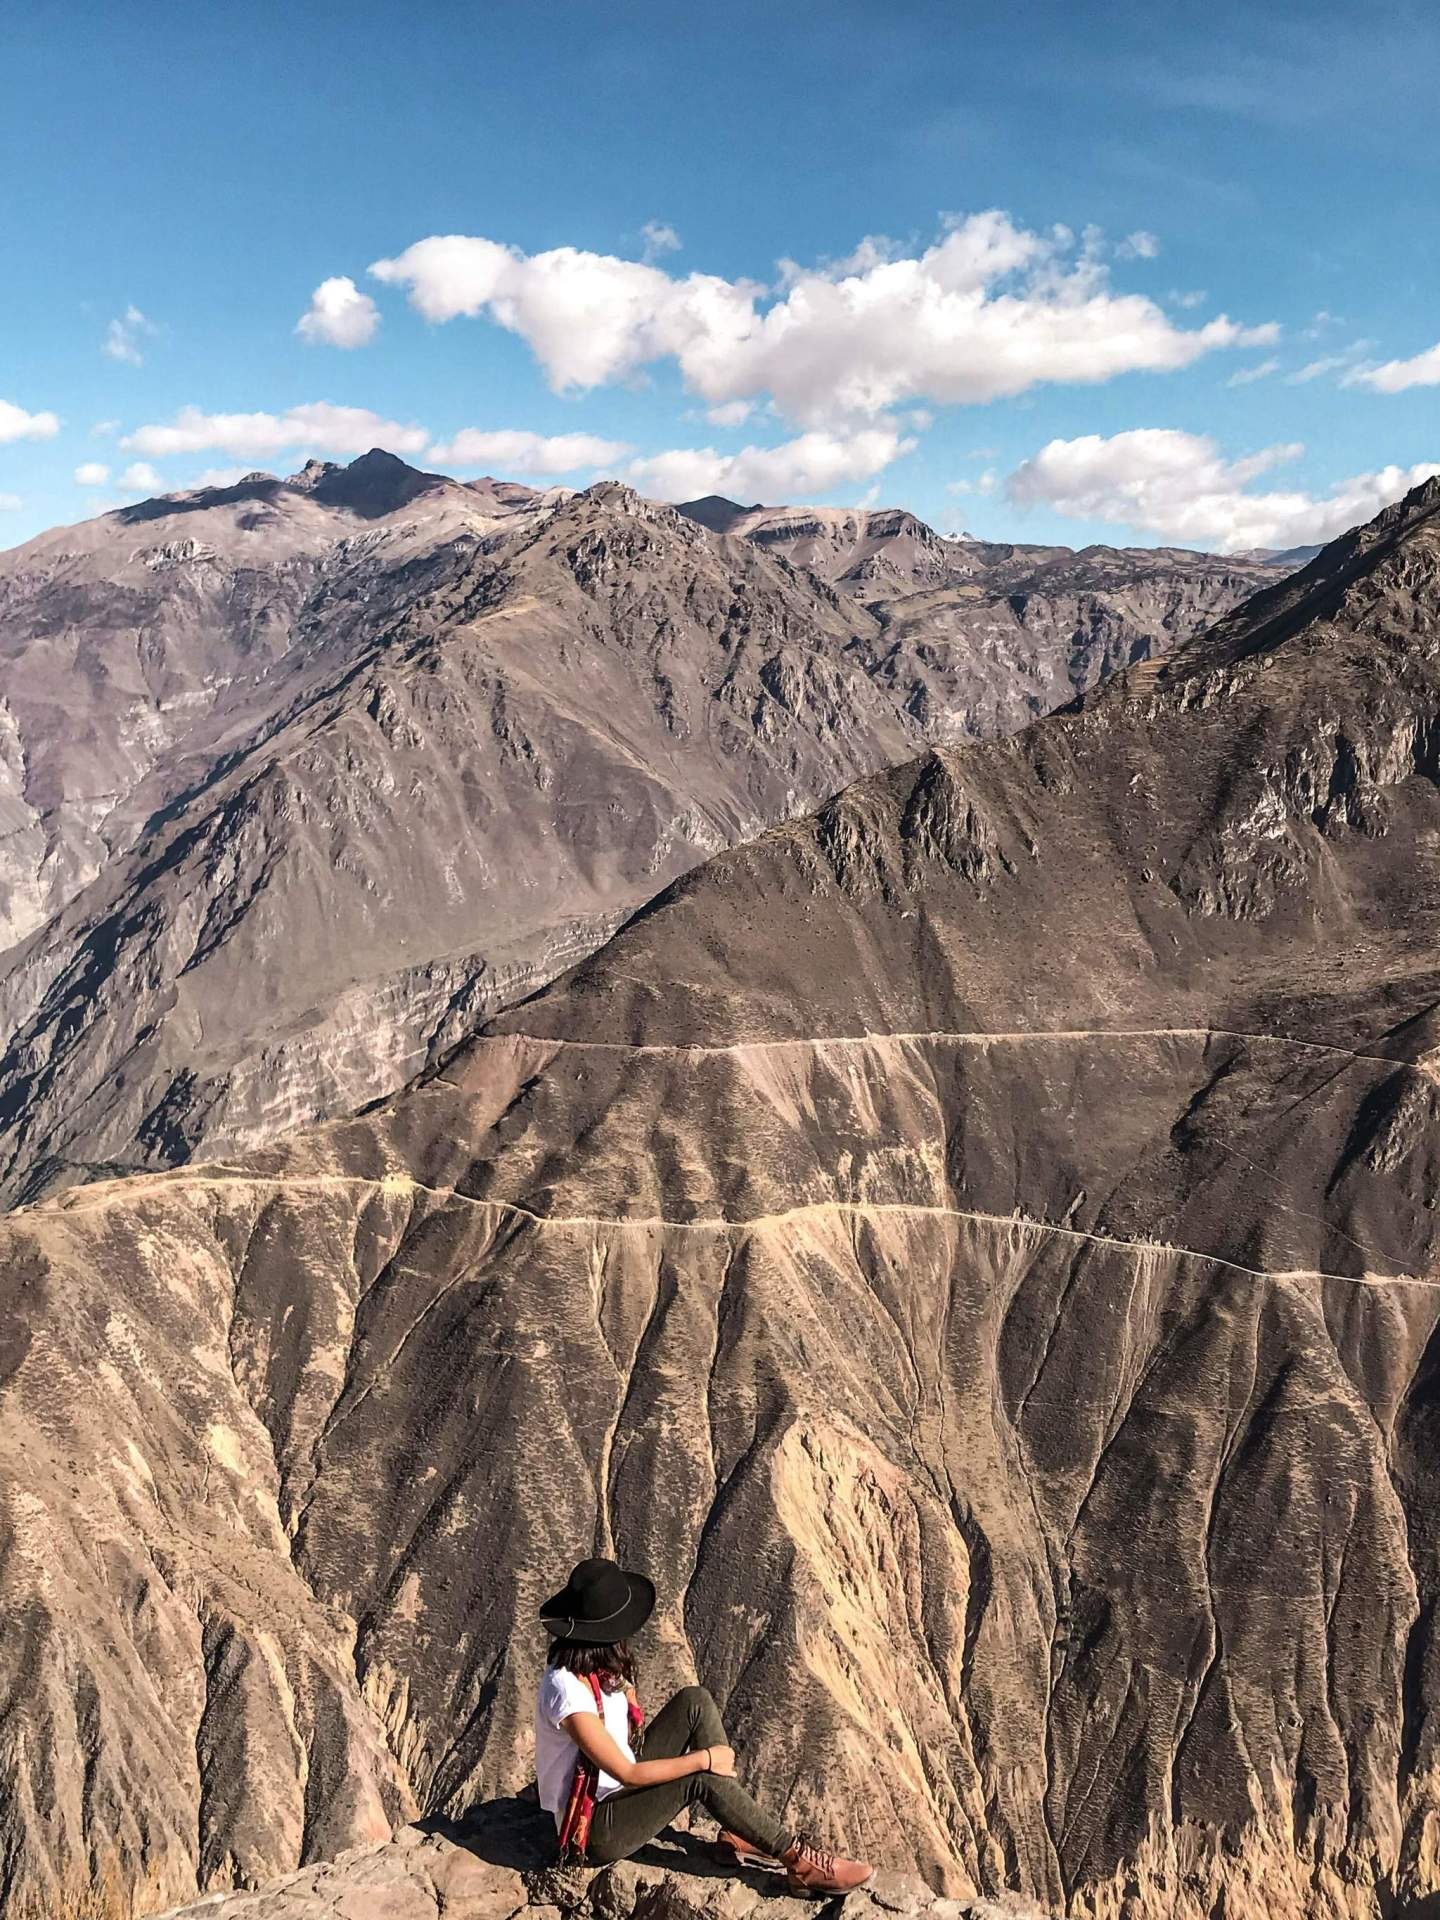 9 things to know before hiking Peru's Colca Canyon without a tour